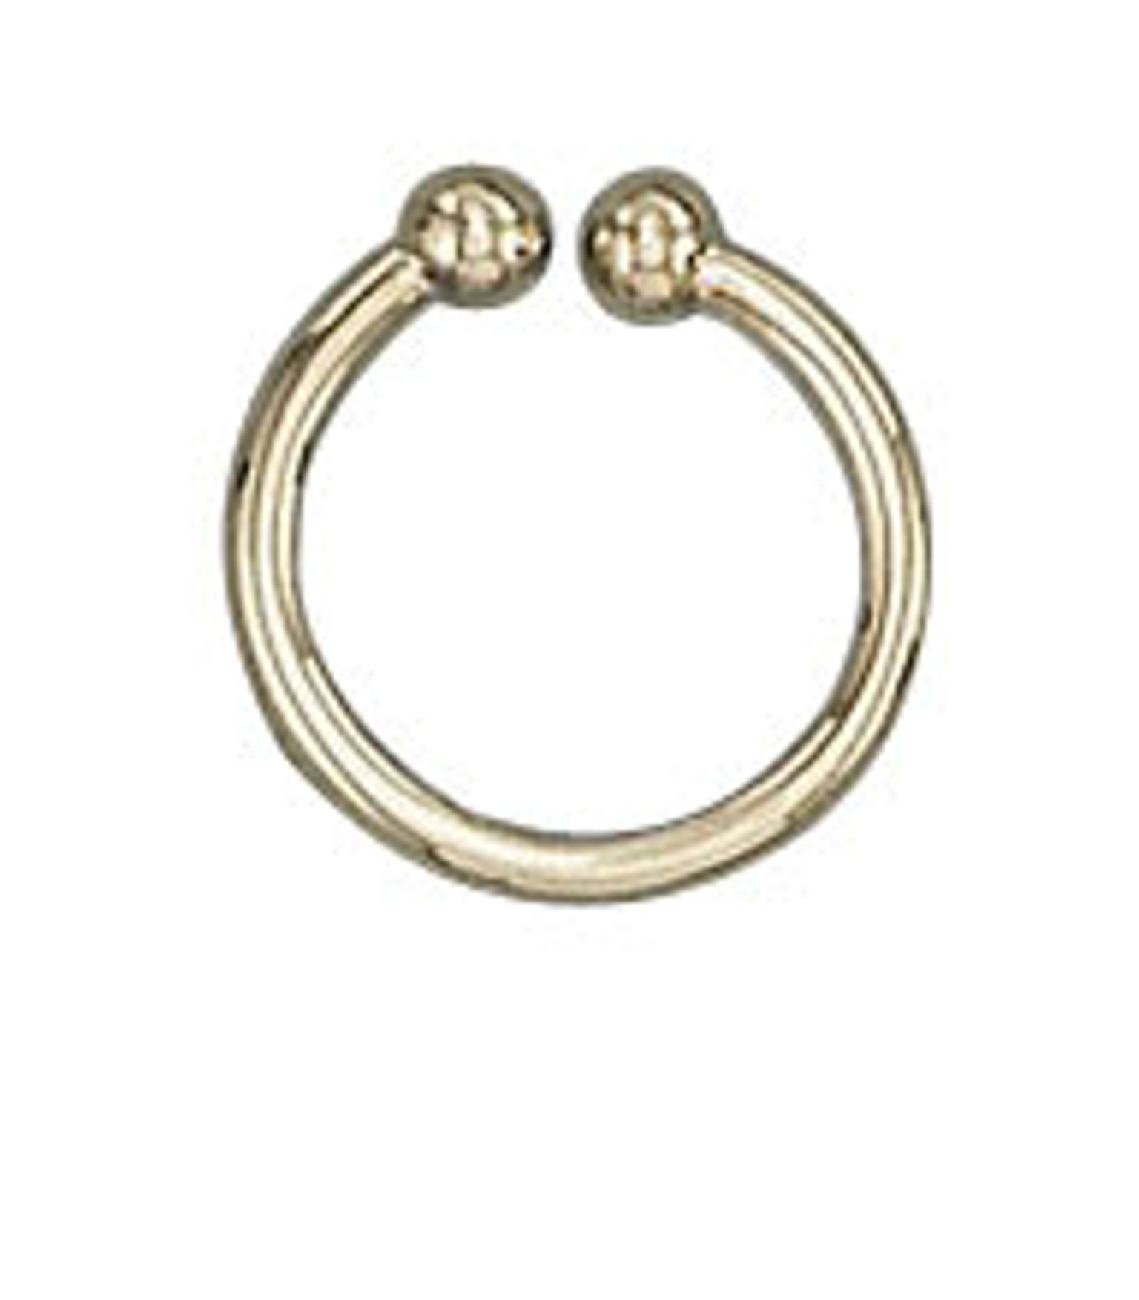 Vermeil Plain Round Wire Band Bali Middle Ear Cuff